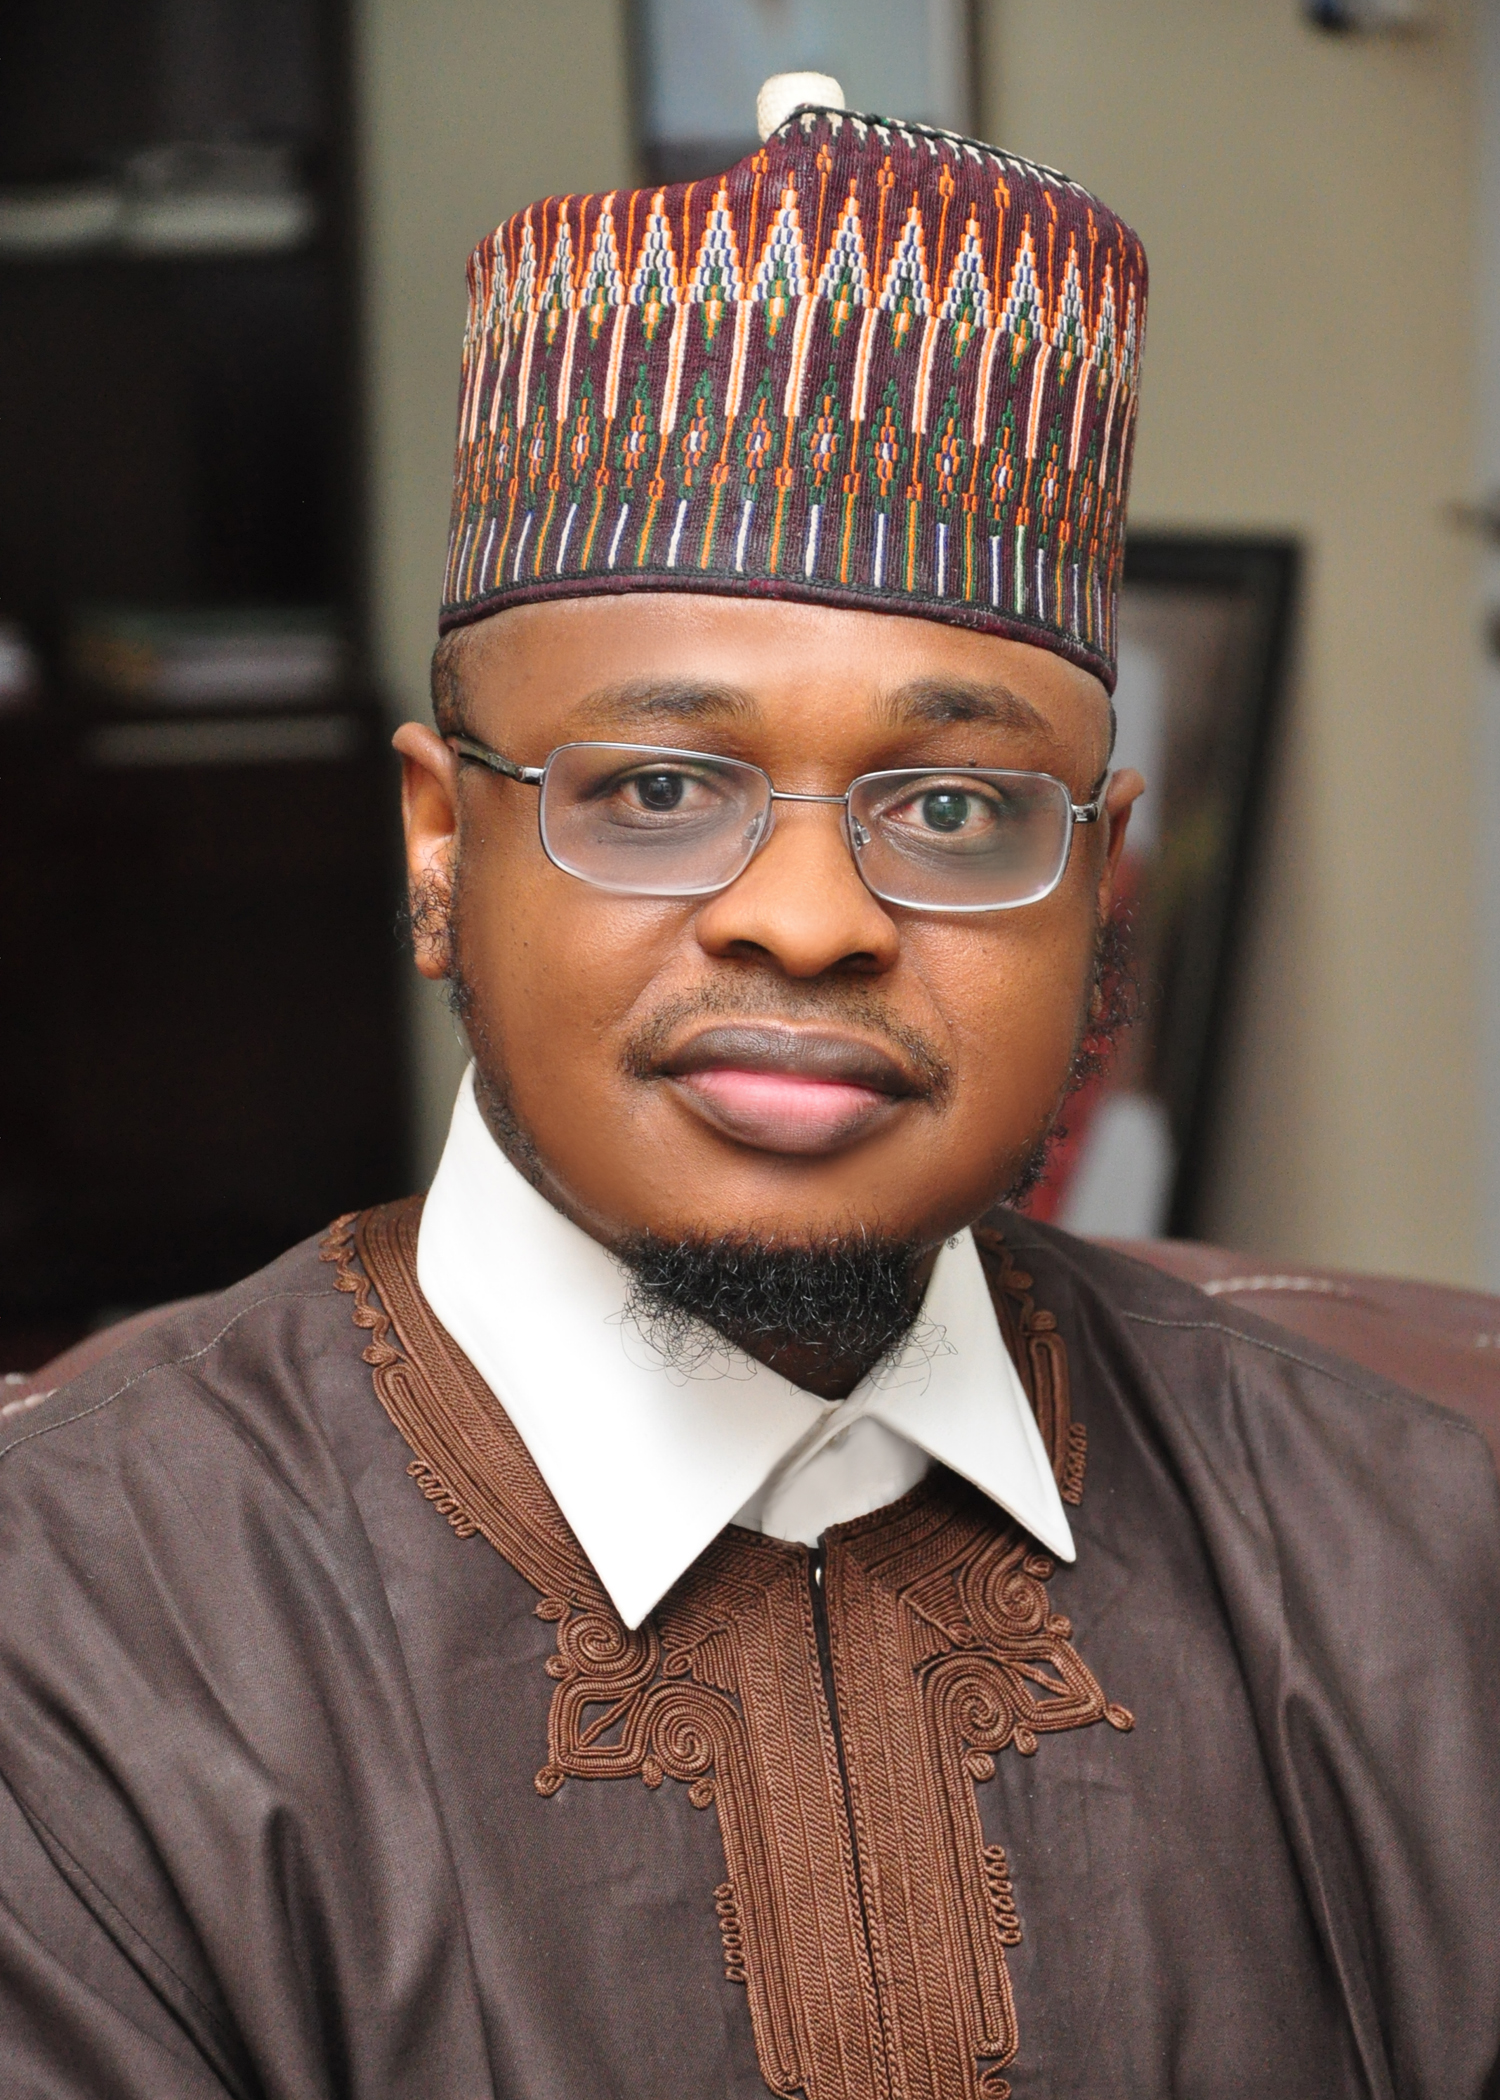 Reasons For 92 Scholarships In ICT, Law- DG NITDA